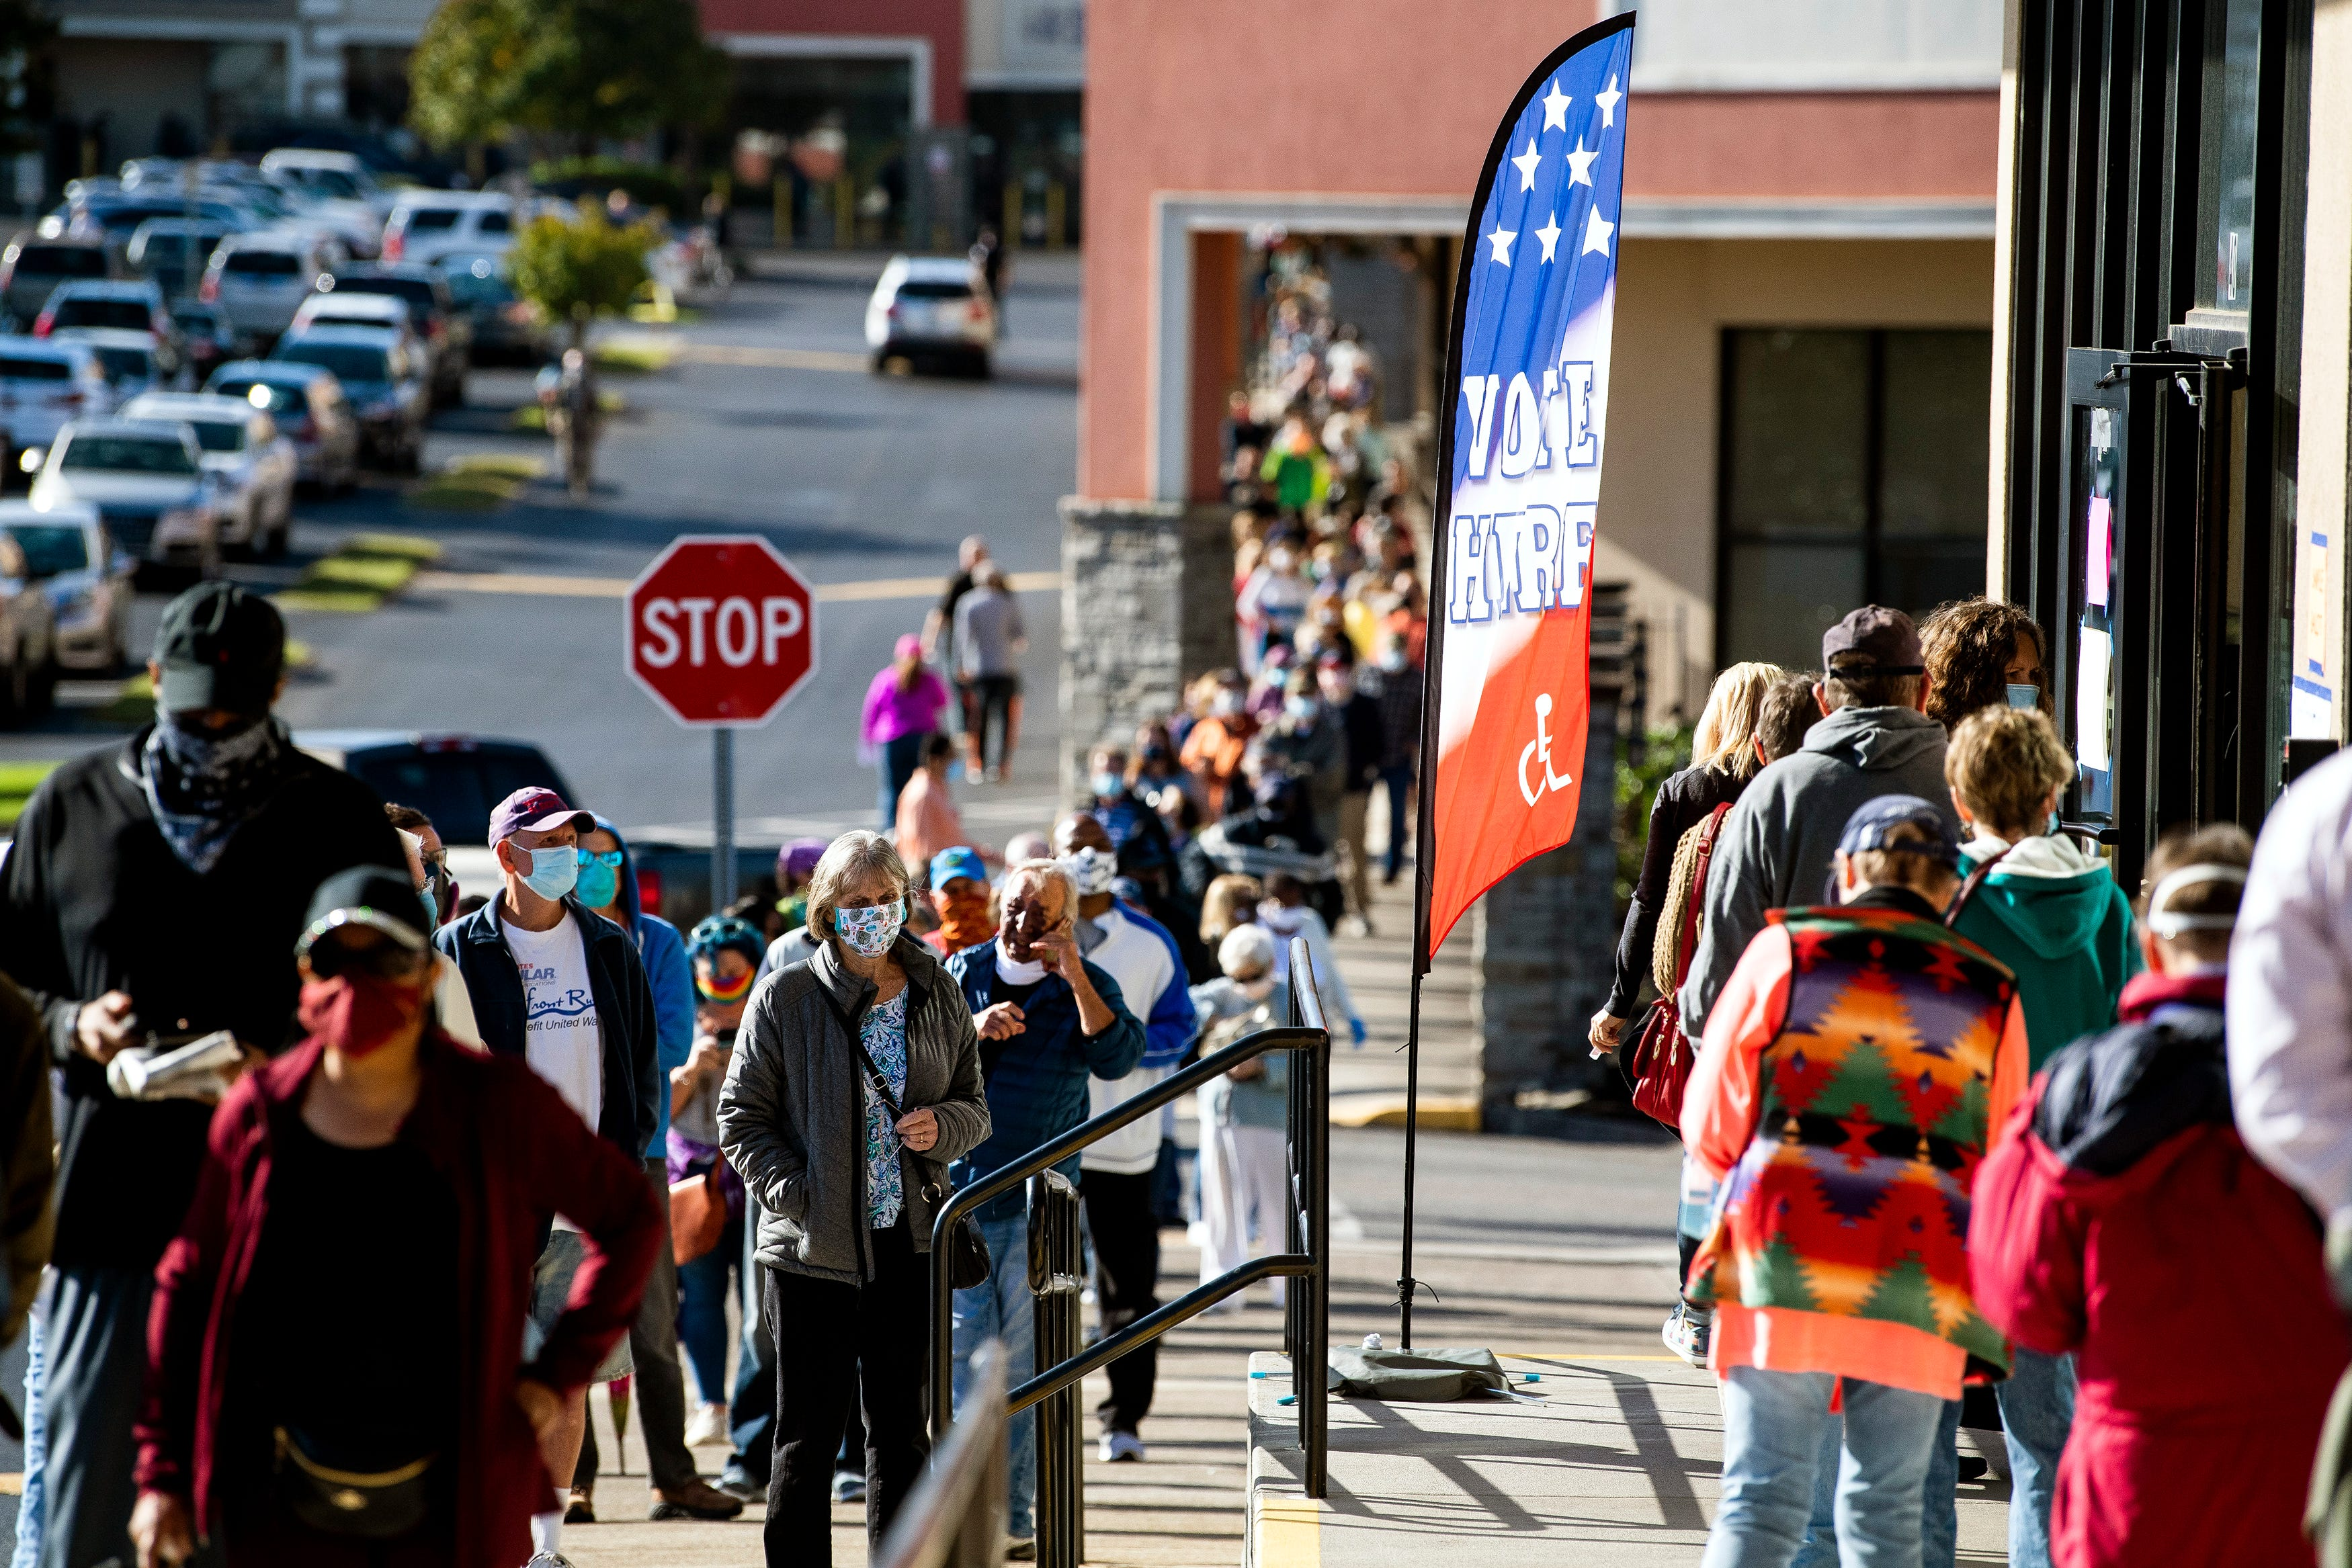 Voters wait in line to vote at the Downtown West early voting location in Knoxville, Tenn., on the first day of early voting in Tennessee on Wednesday, Oct. 14, 2020.